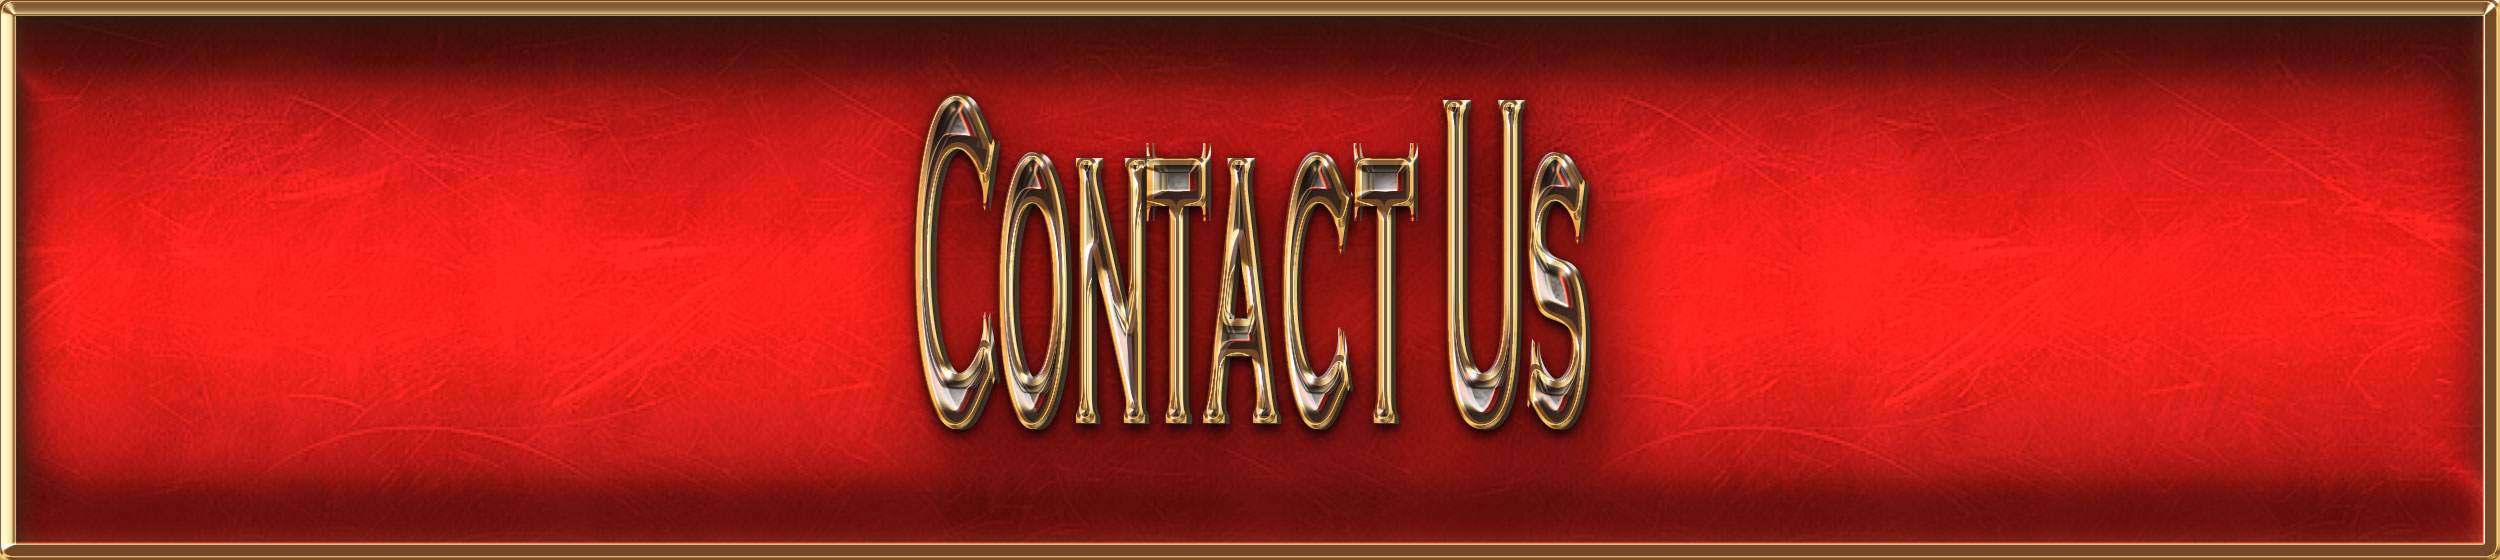 Contact-Us-Red-BG